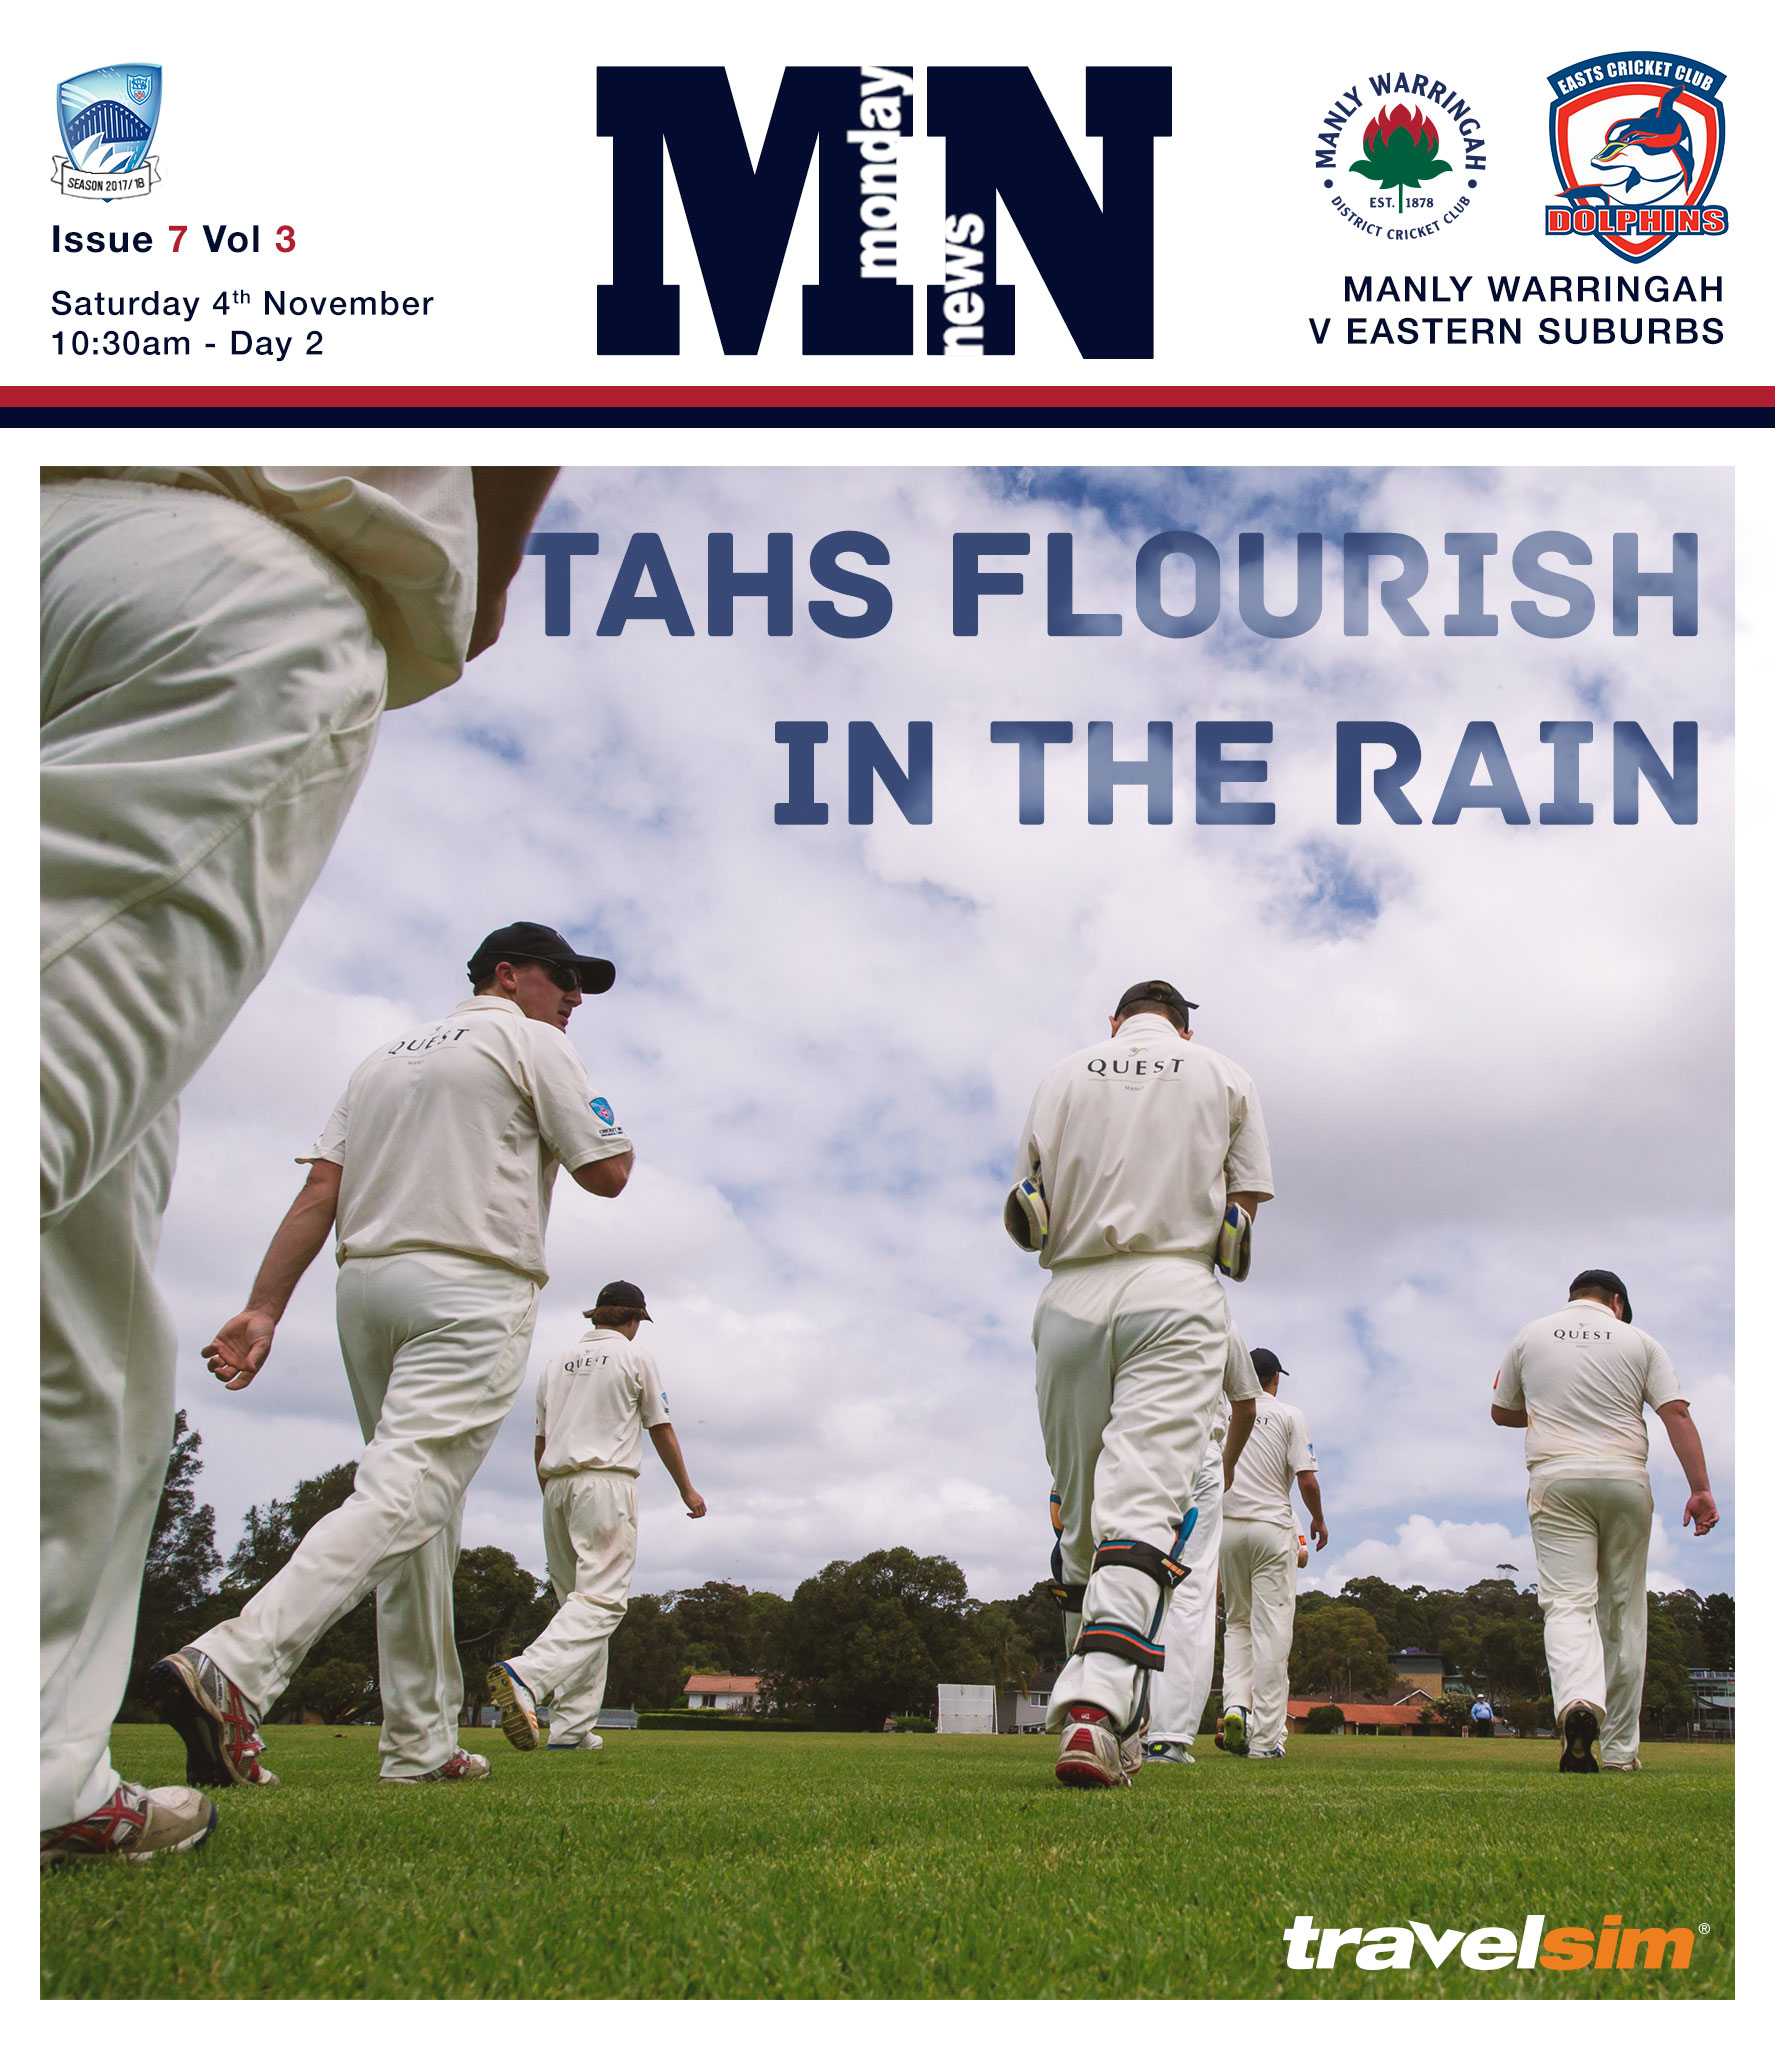 Tahs continue to flourish in wet conditions - Monday News